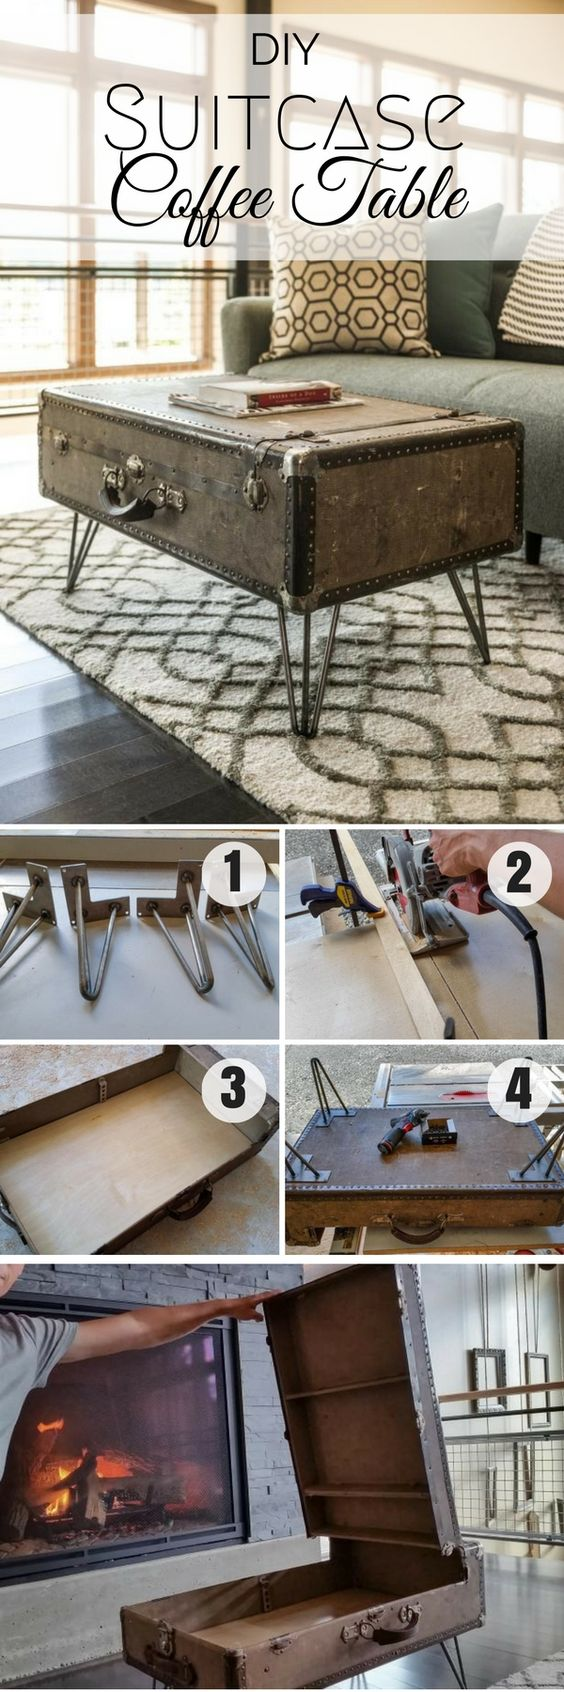 Check out how to easily turn a suitcase into a DIY coffee table @istandarddesign